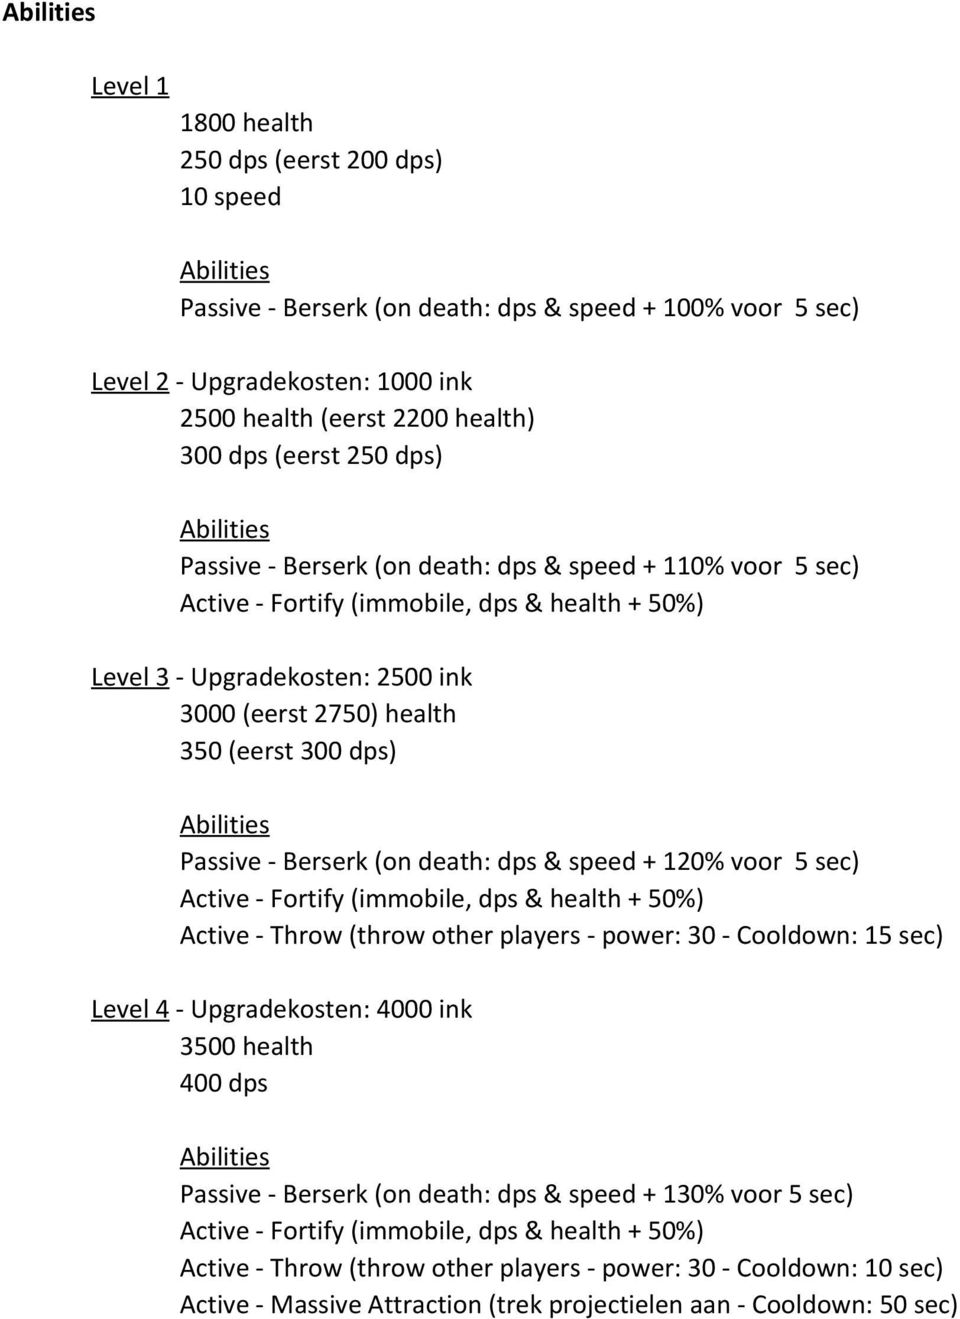 health 350 (eerst 300 dps) Abilities Passive - Berserk (on death: dps & speed + 120% voor 5 sec) Active - Fortify (immobile, dps & health + 50%) Active - Throw (throw other players - power: 30 -